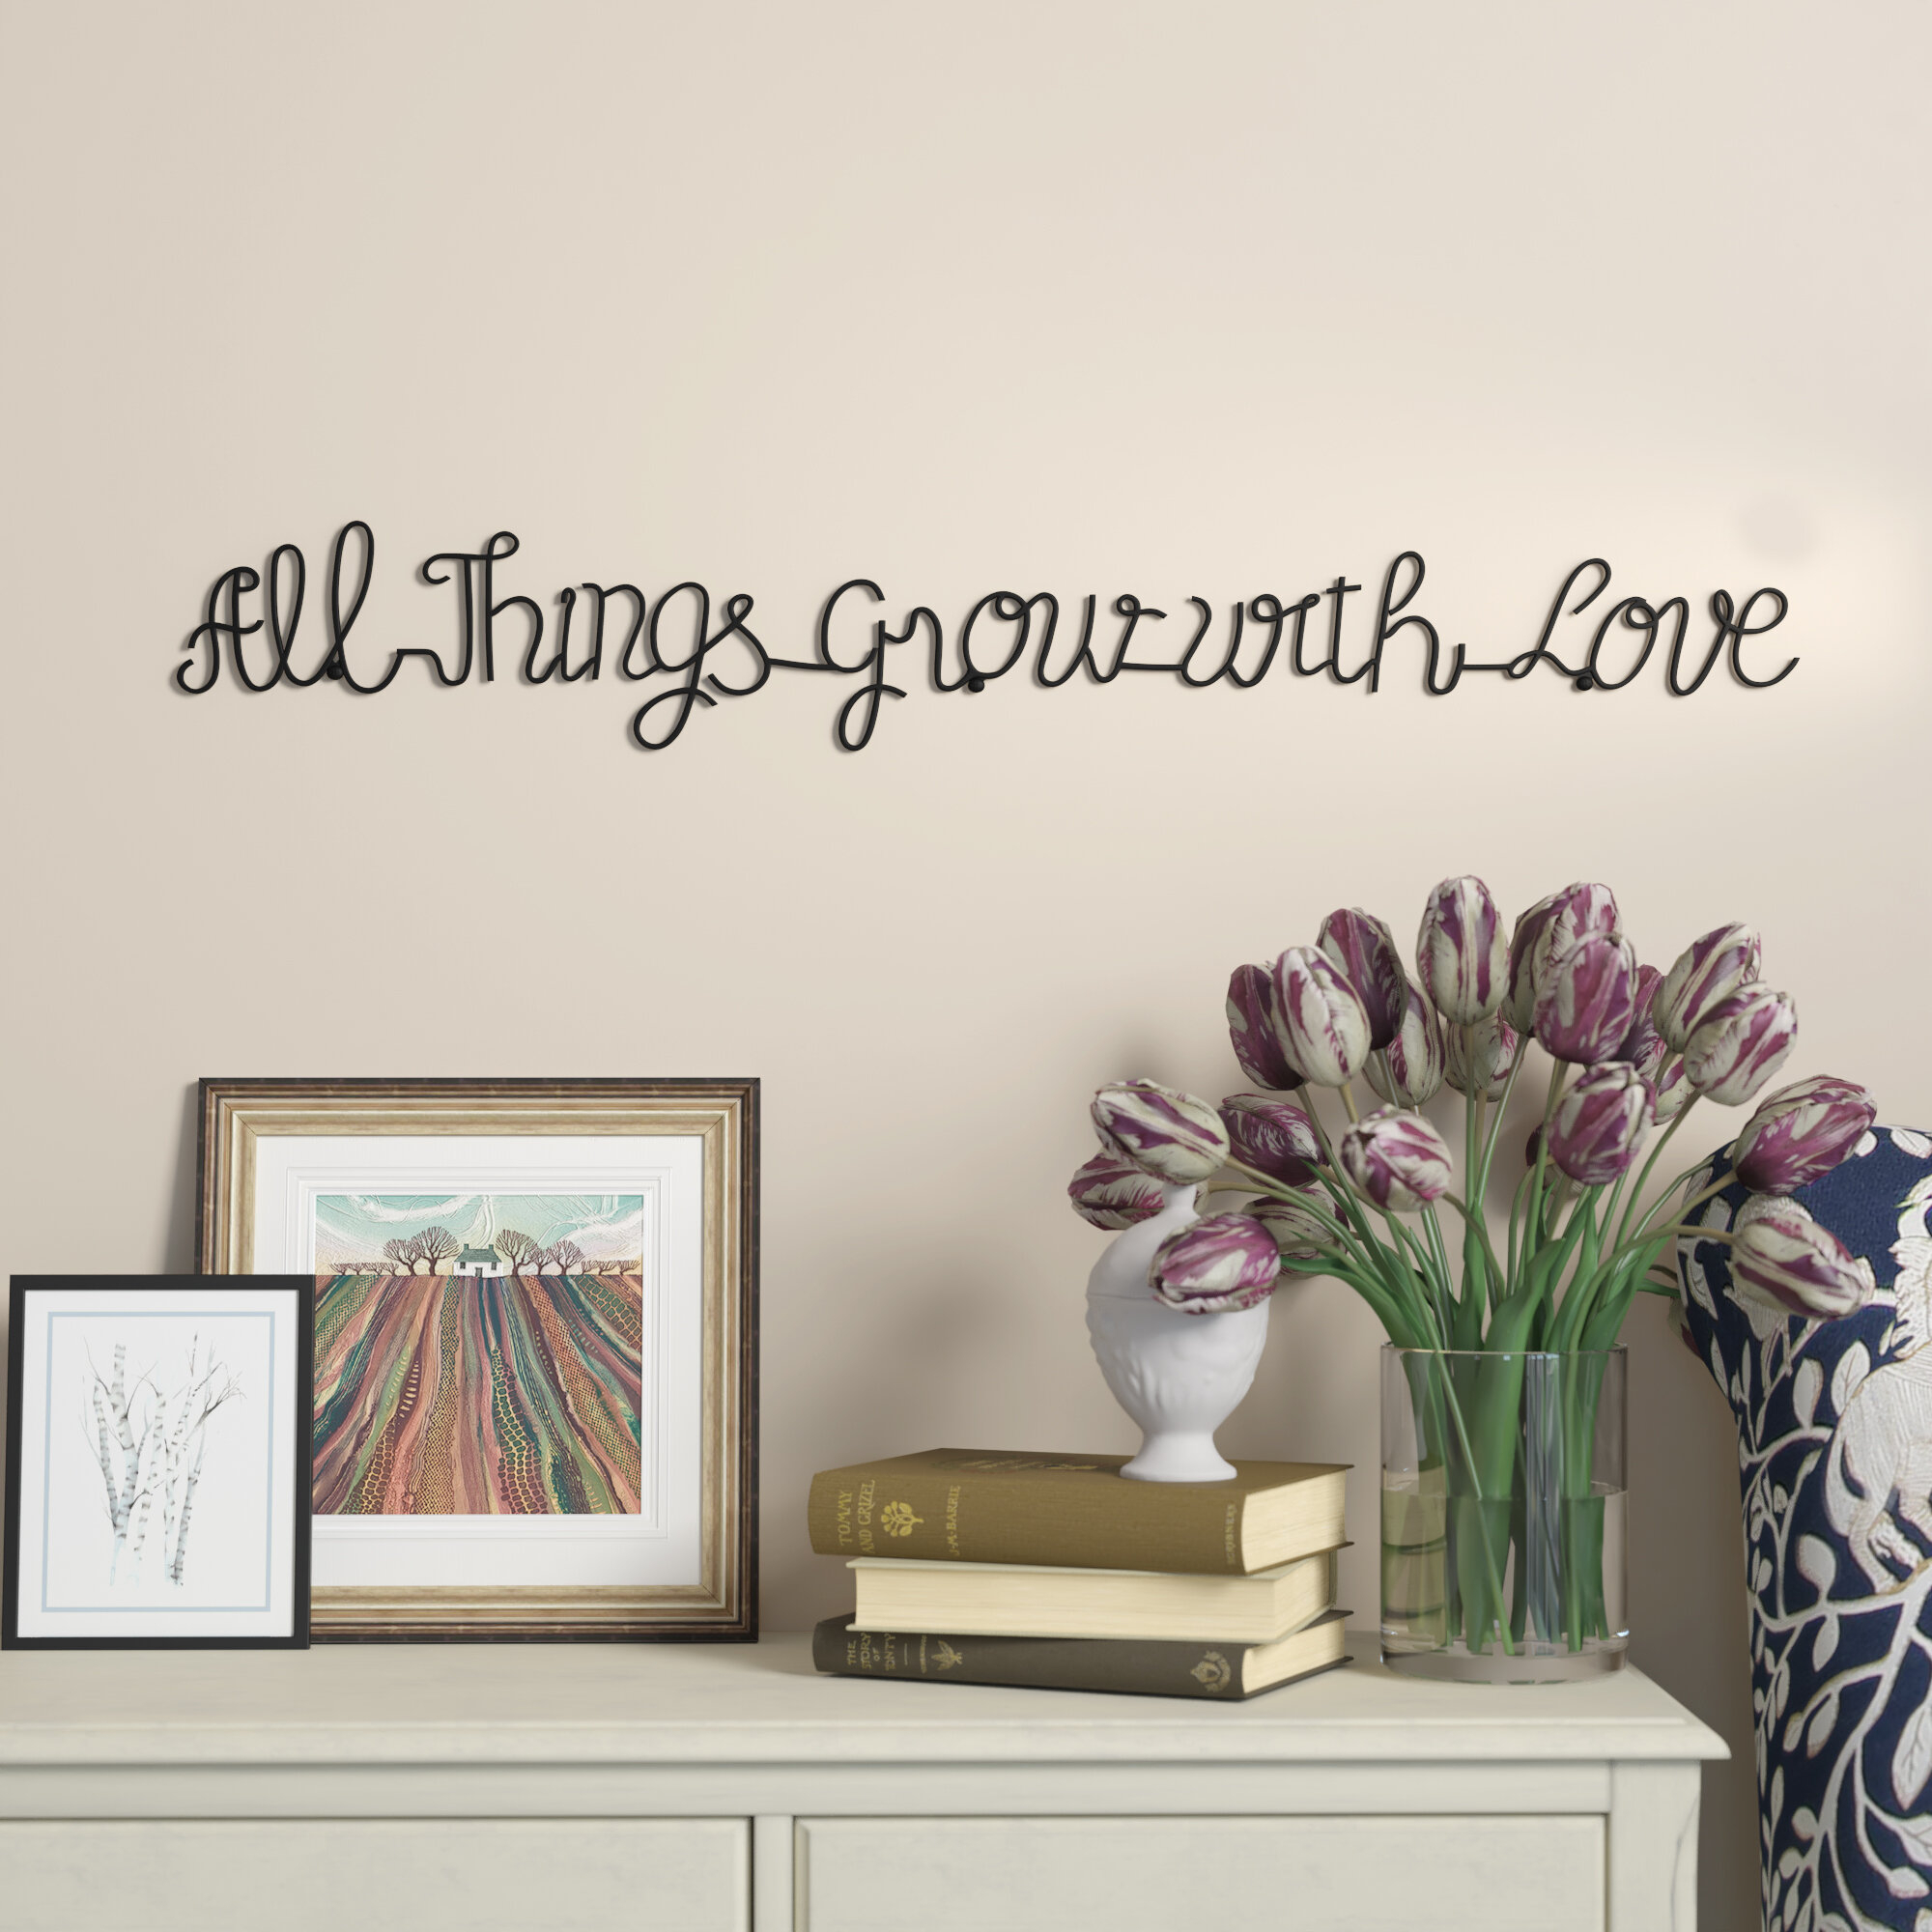 Live Love Laugh Wall Decor | Wayfair Within Live Love Laugh 3 Piece Black Wall Decor Sets (View 20 of 30)